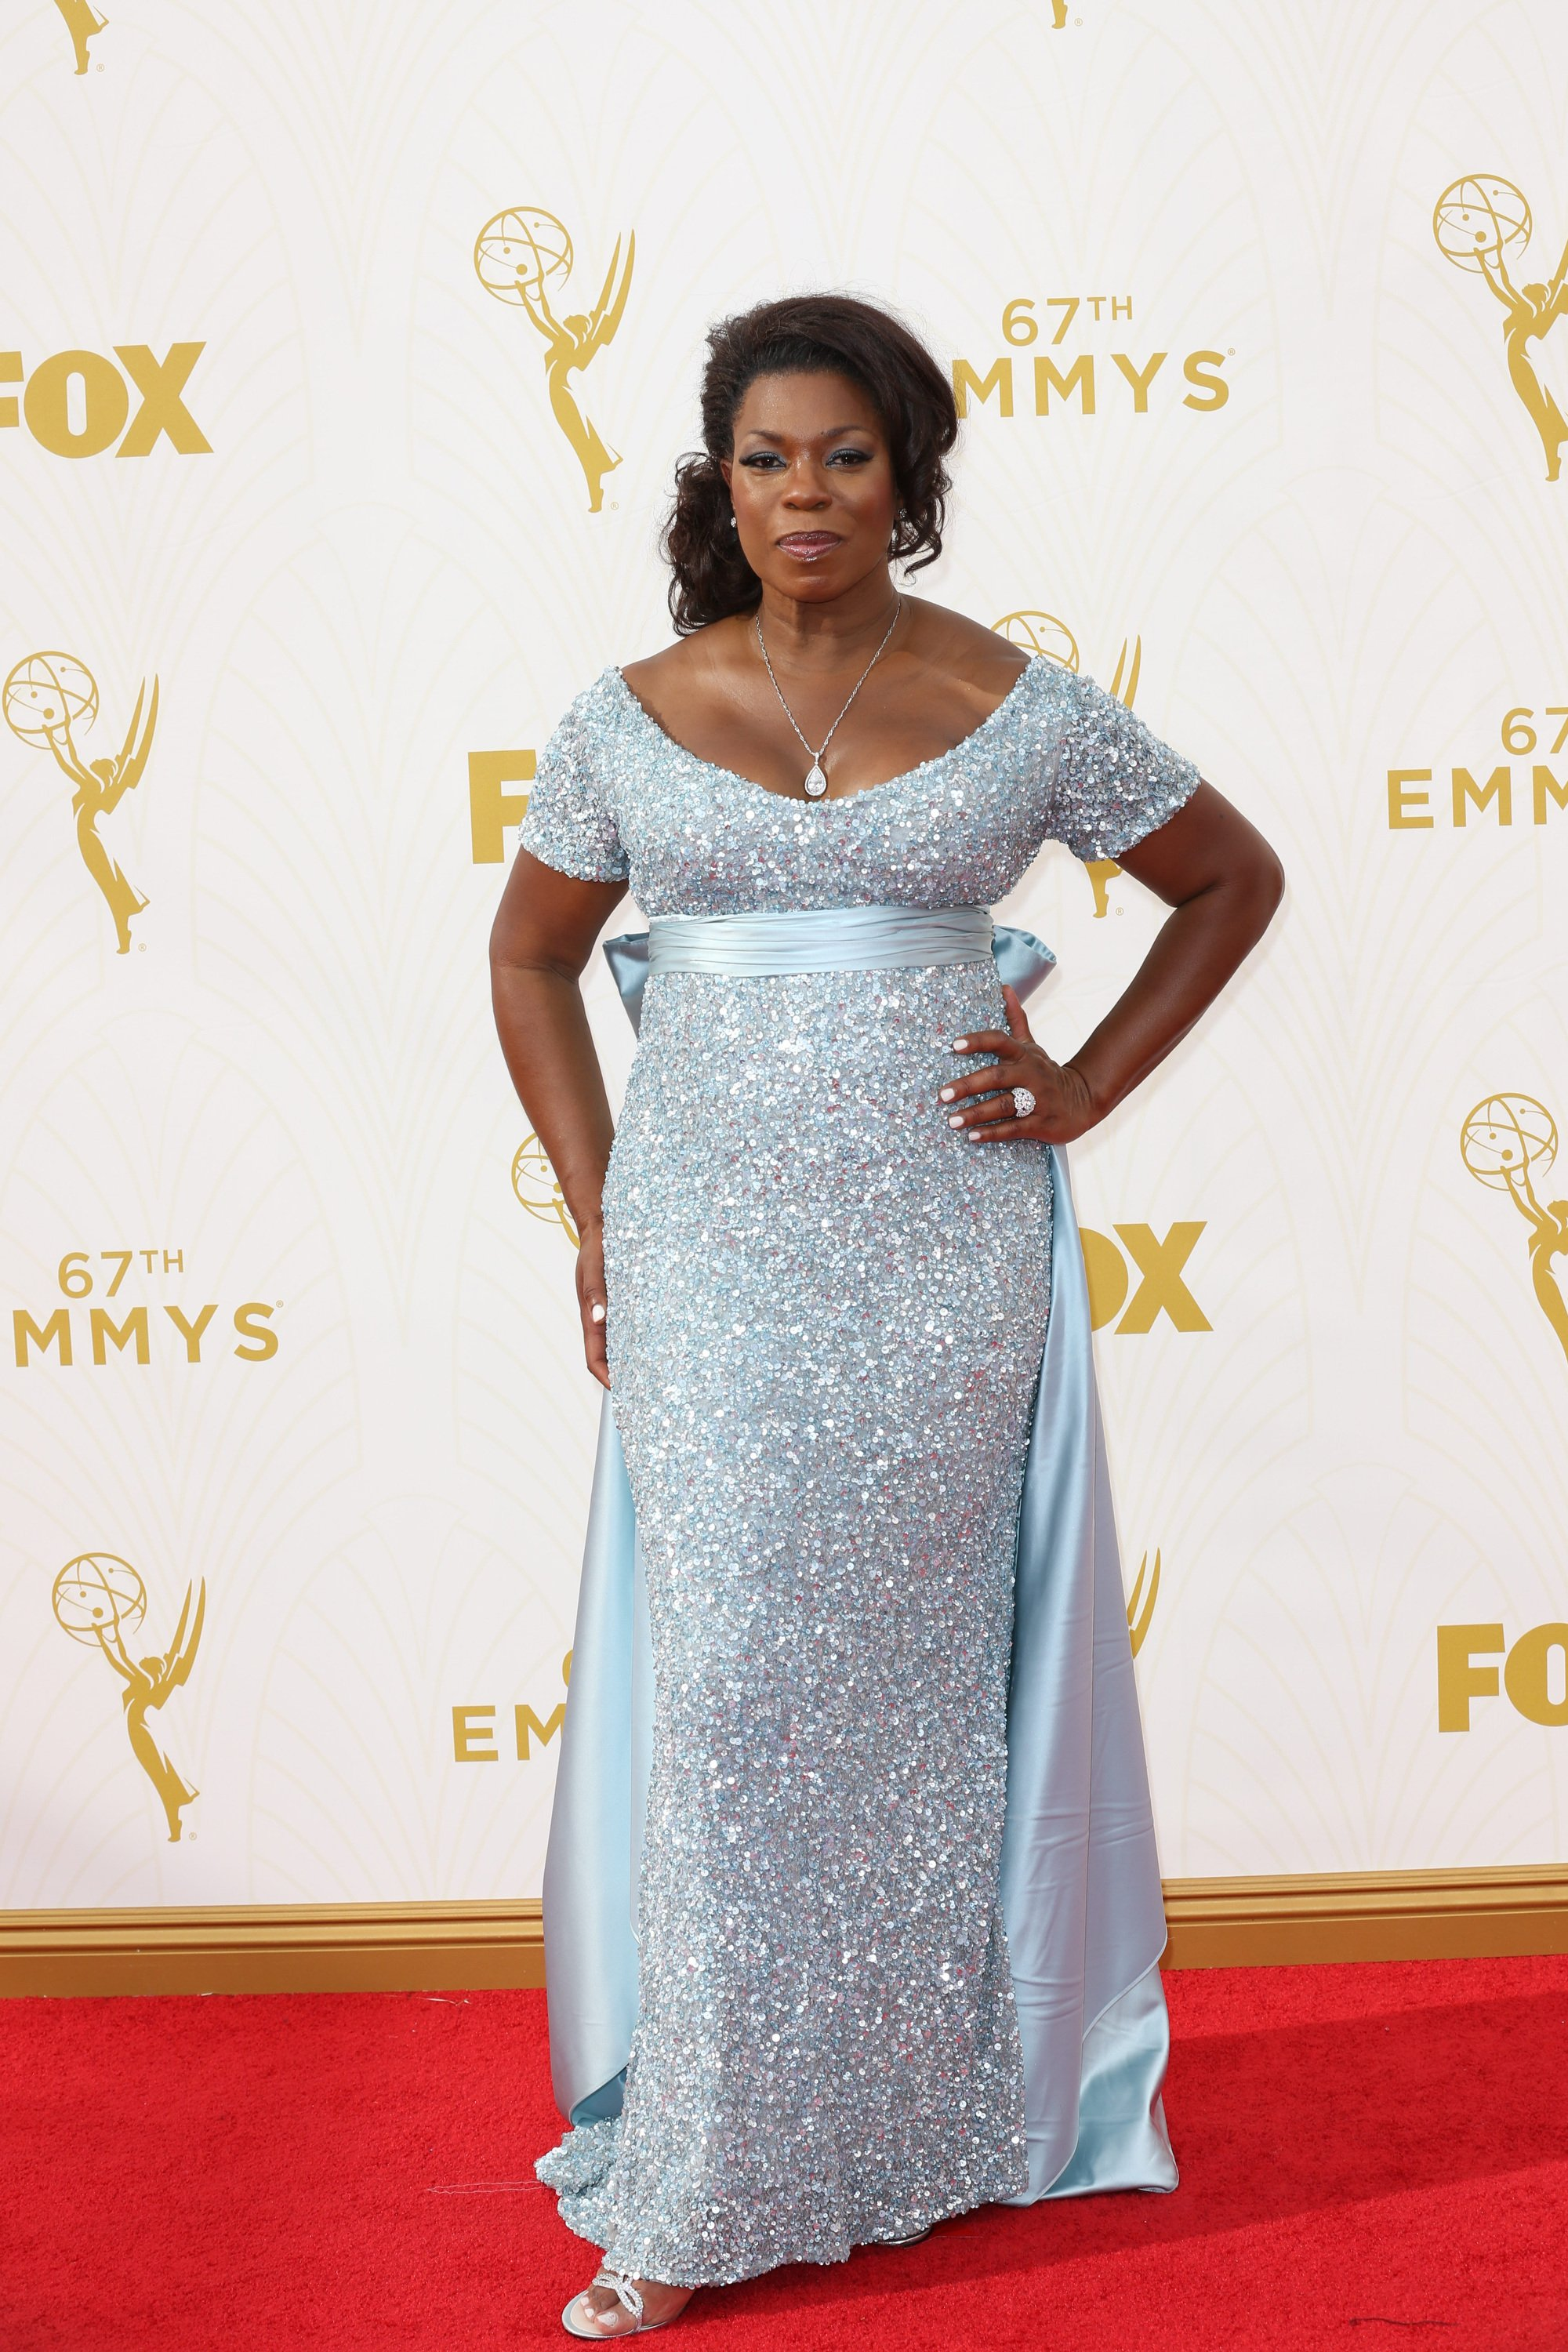 Celebrities arrive at 67th Emmys Red Carpet at Microsoft Theater.  Featuring: Lorraine Trusaant Where: Los Angeles, California, United States When: 20 Sep 2015 Credit: Brian To/WENN.com